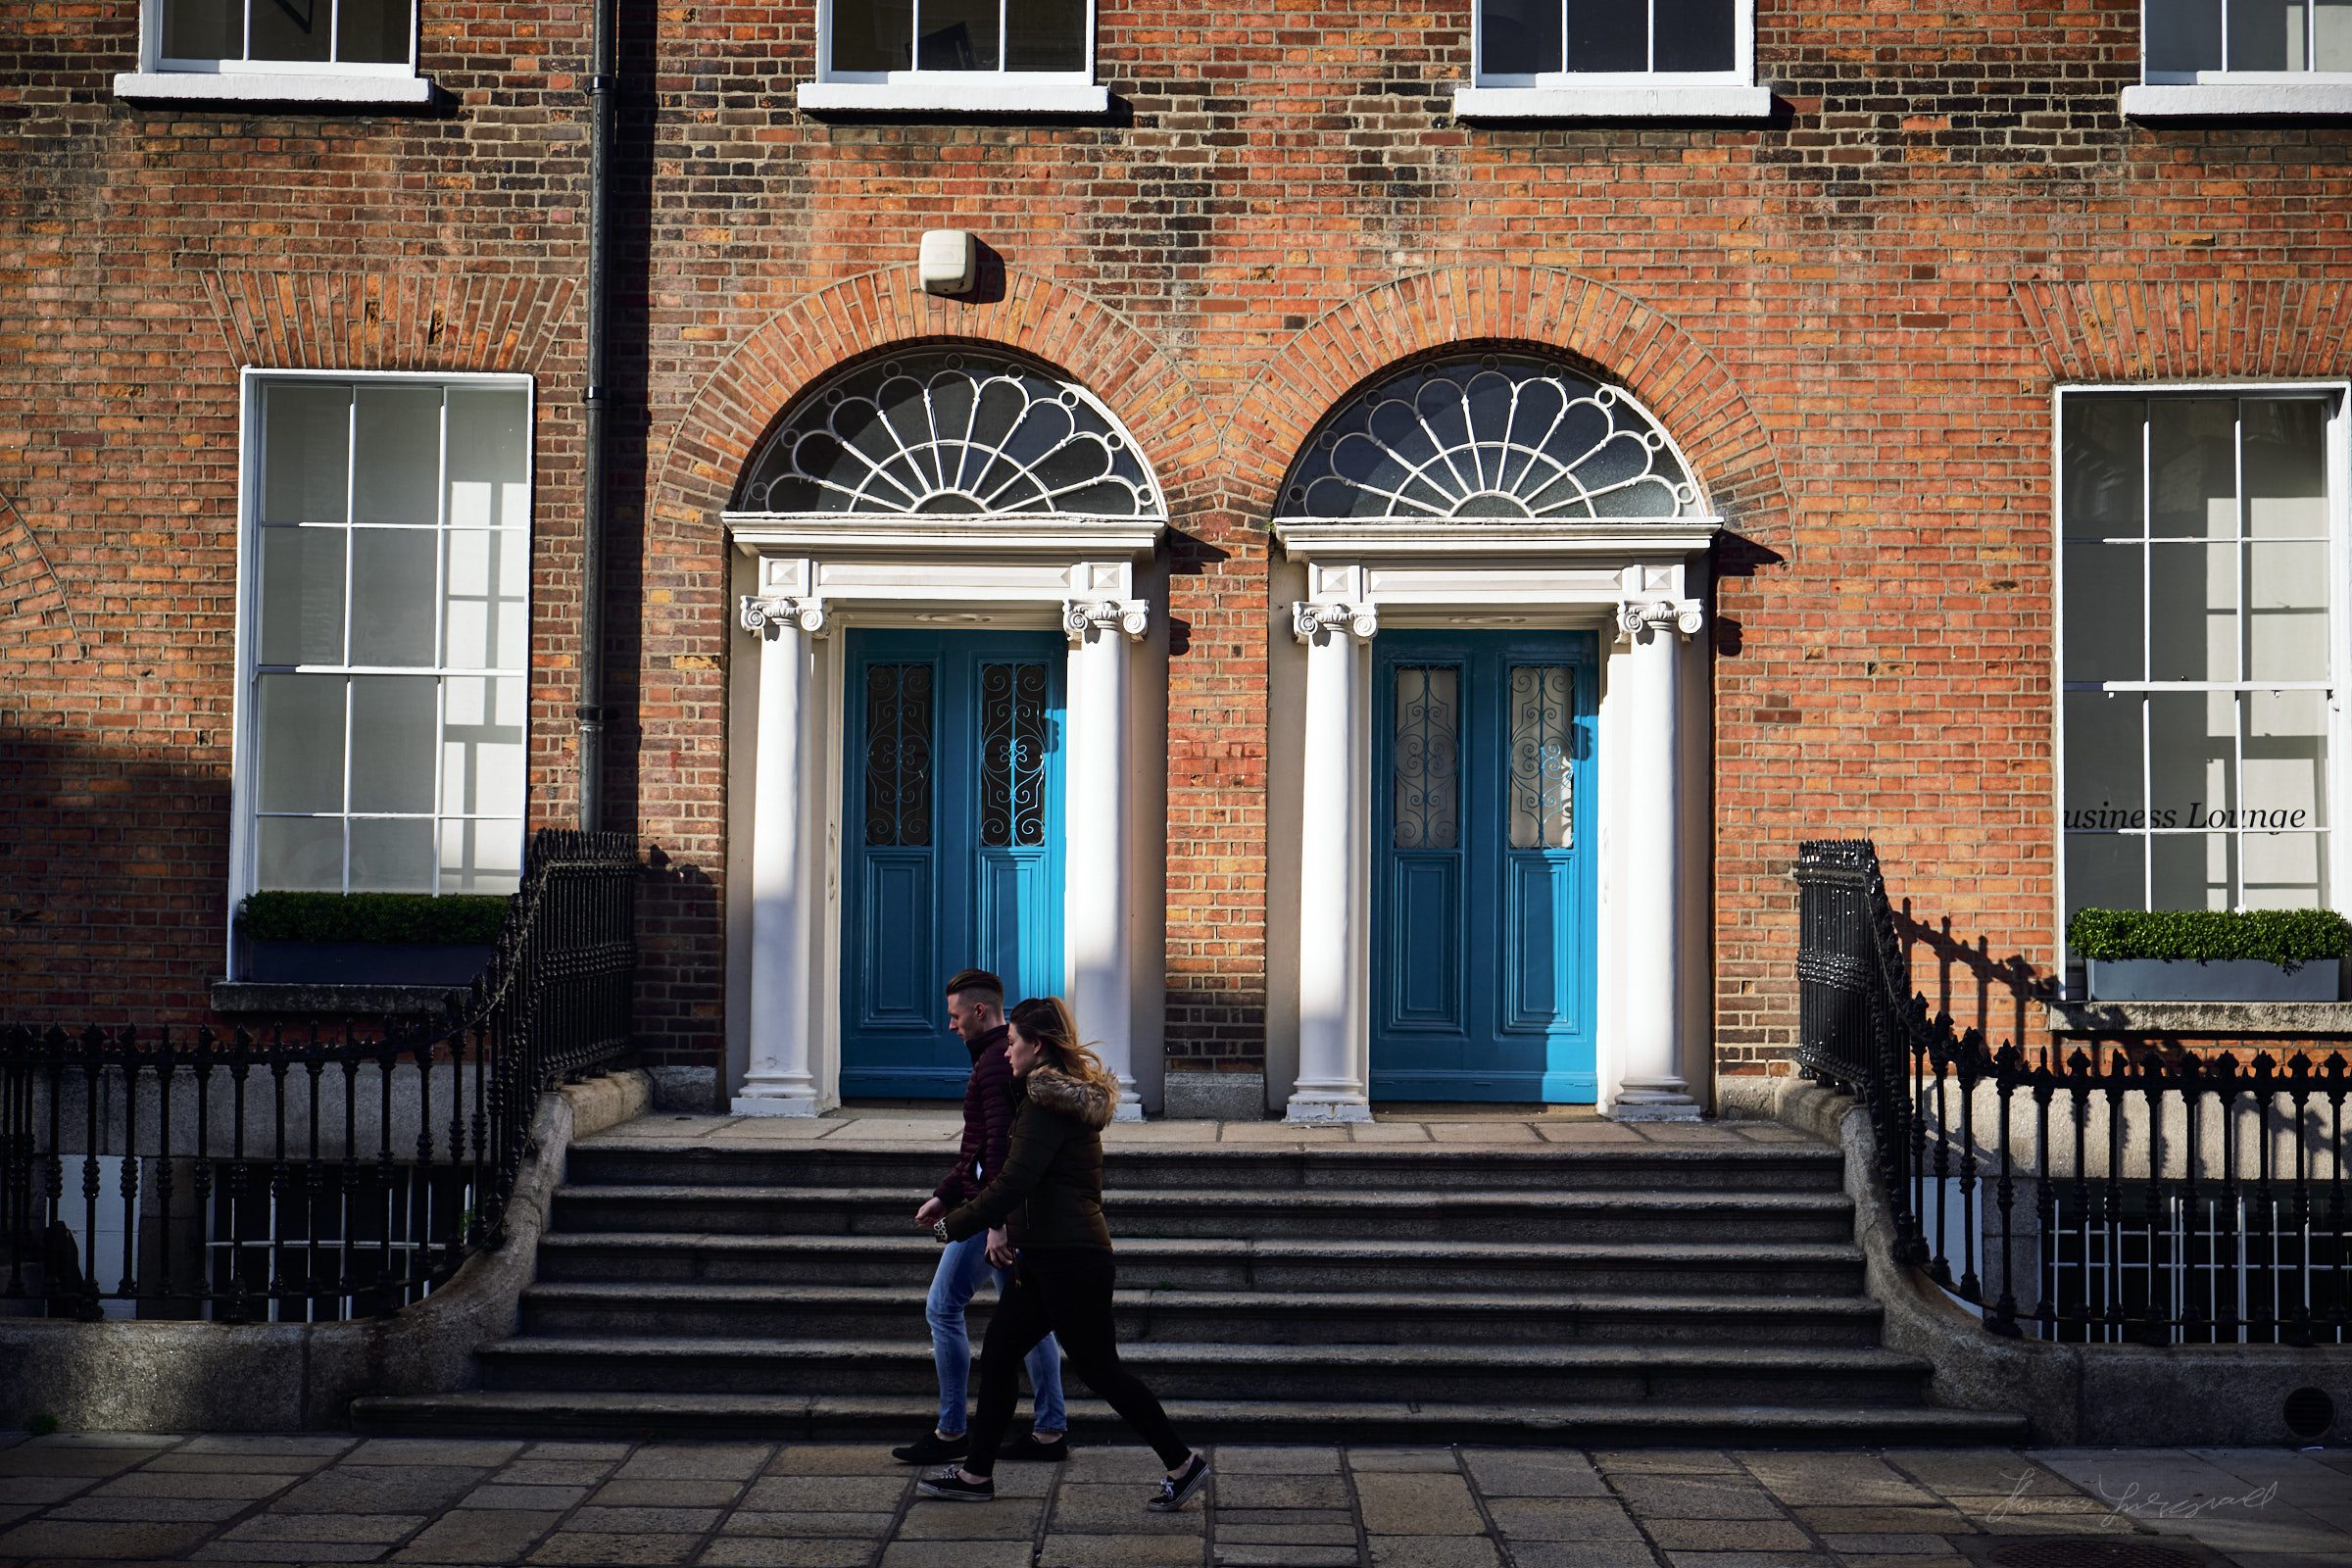 Blue doors and passers by in Dublin